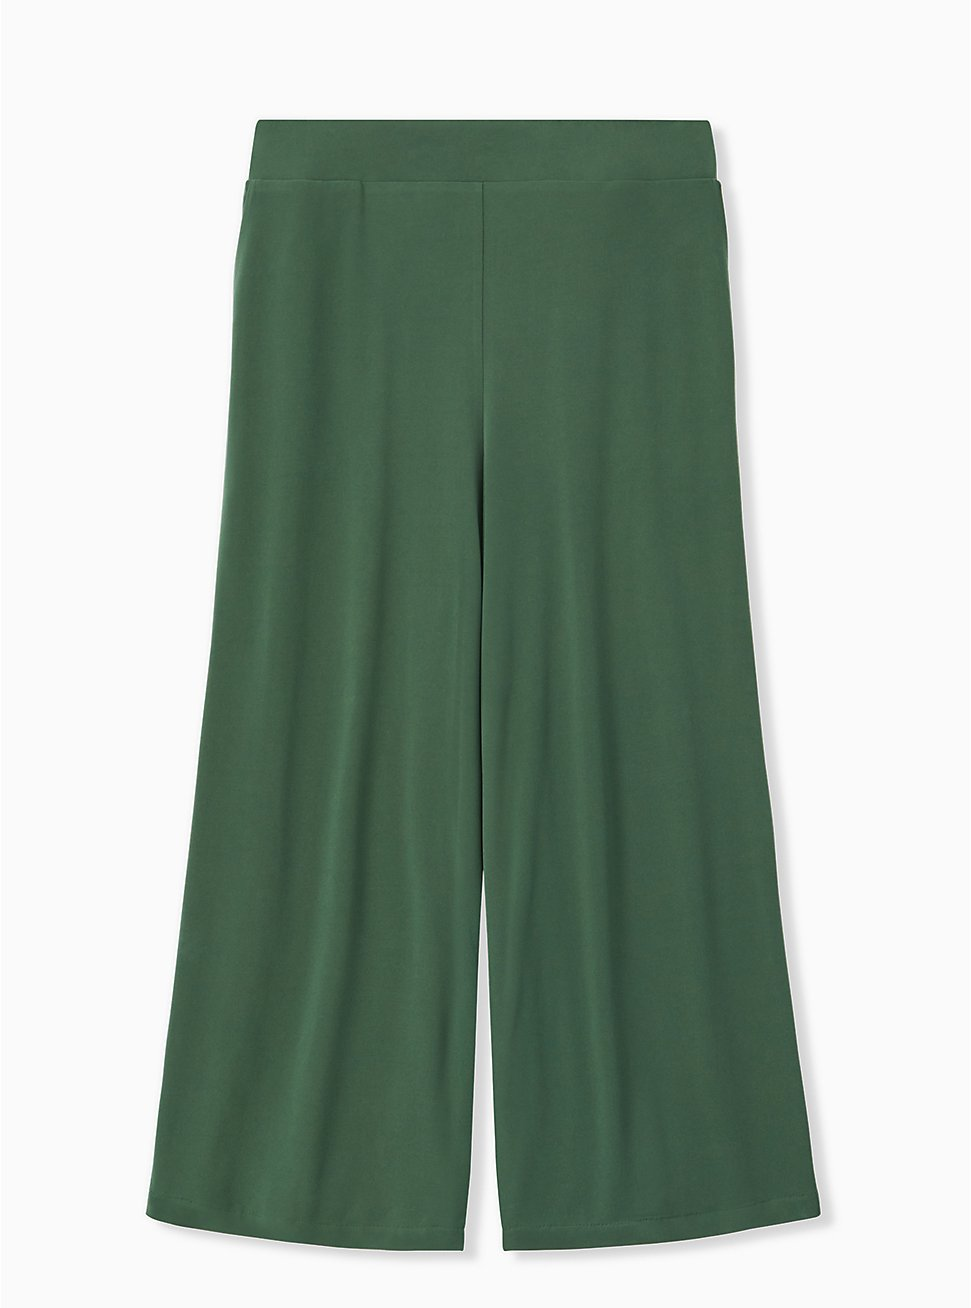 Green Studio Knit Culotte Pant, GARDEN TOPIARY, hi-res